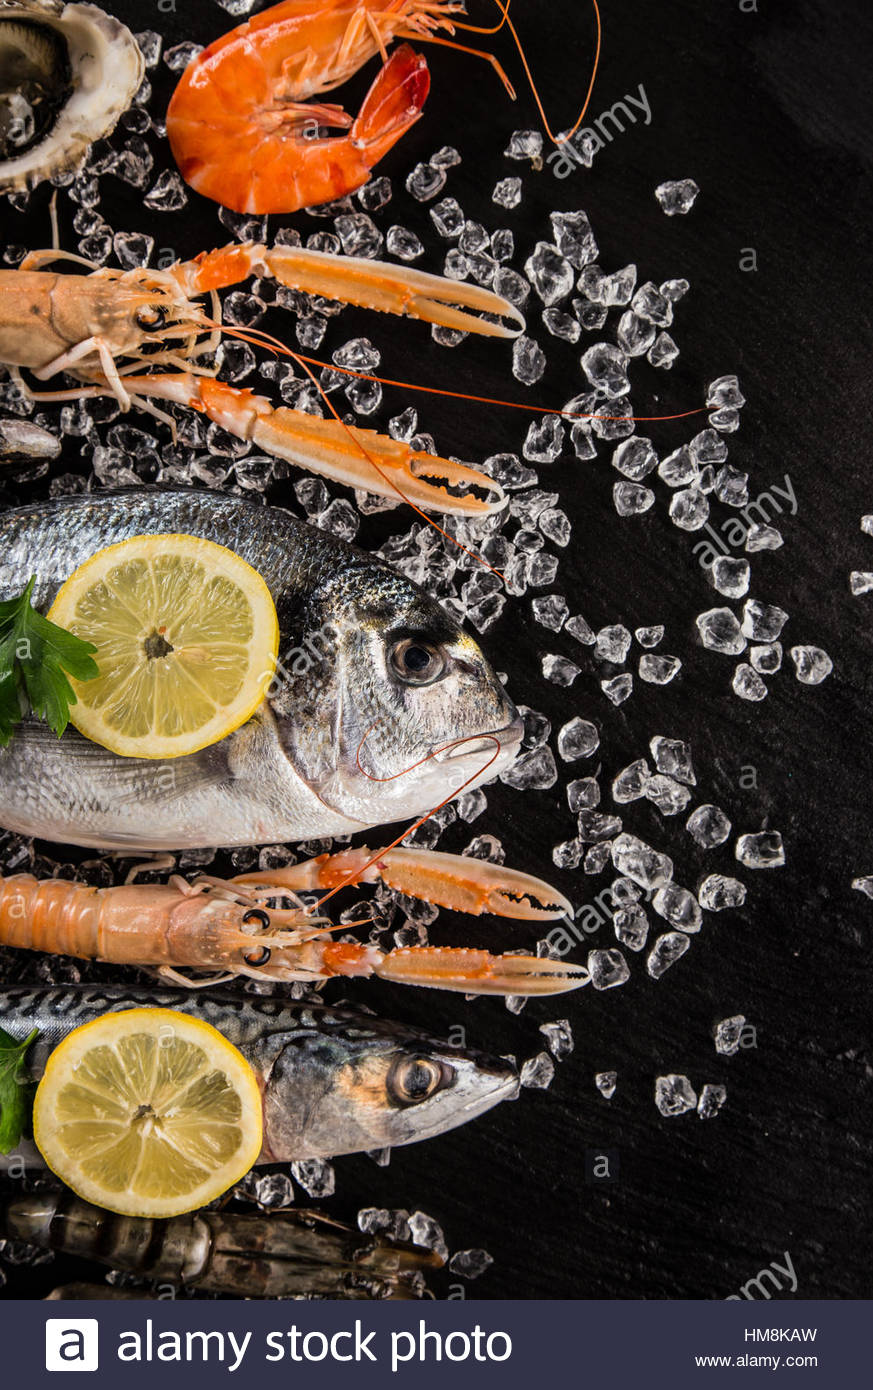 Fresh seafood on black stone, close-up. - Stock Image